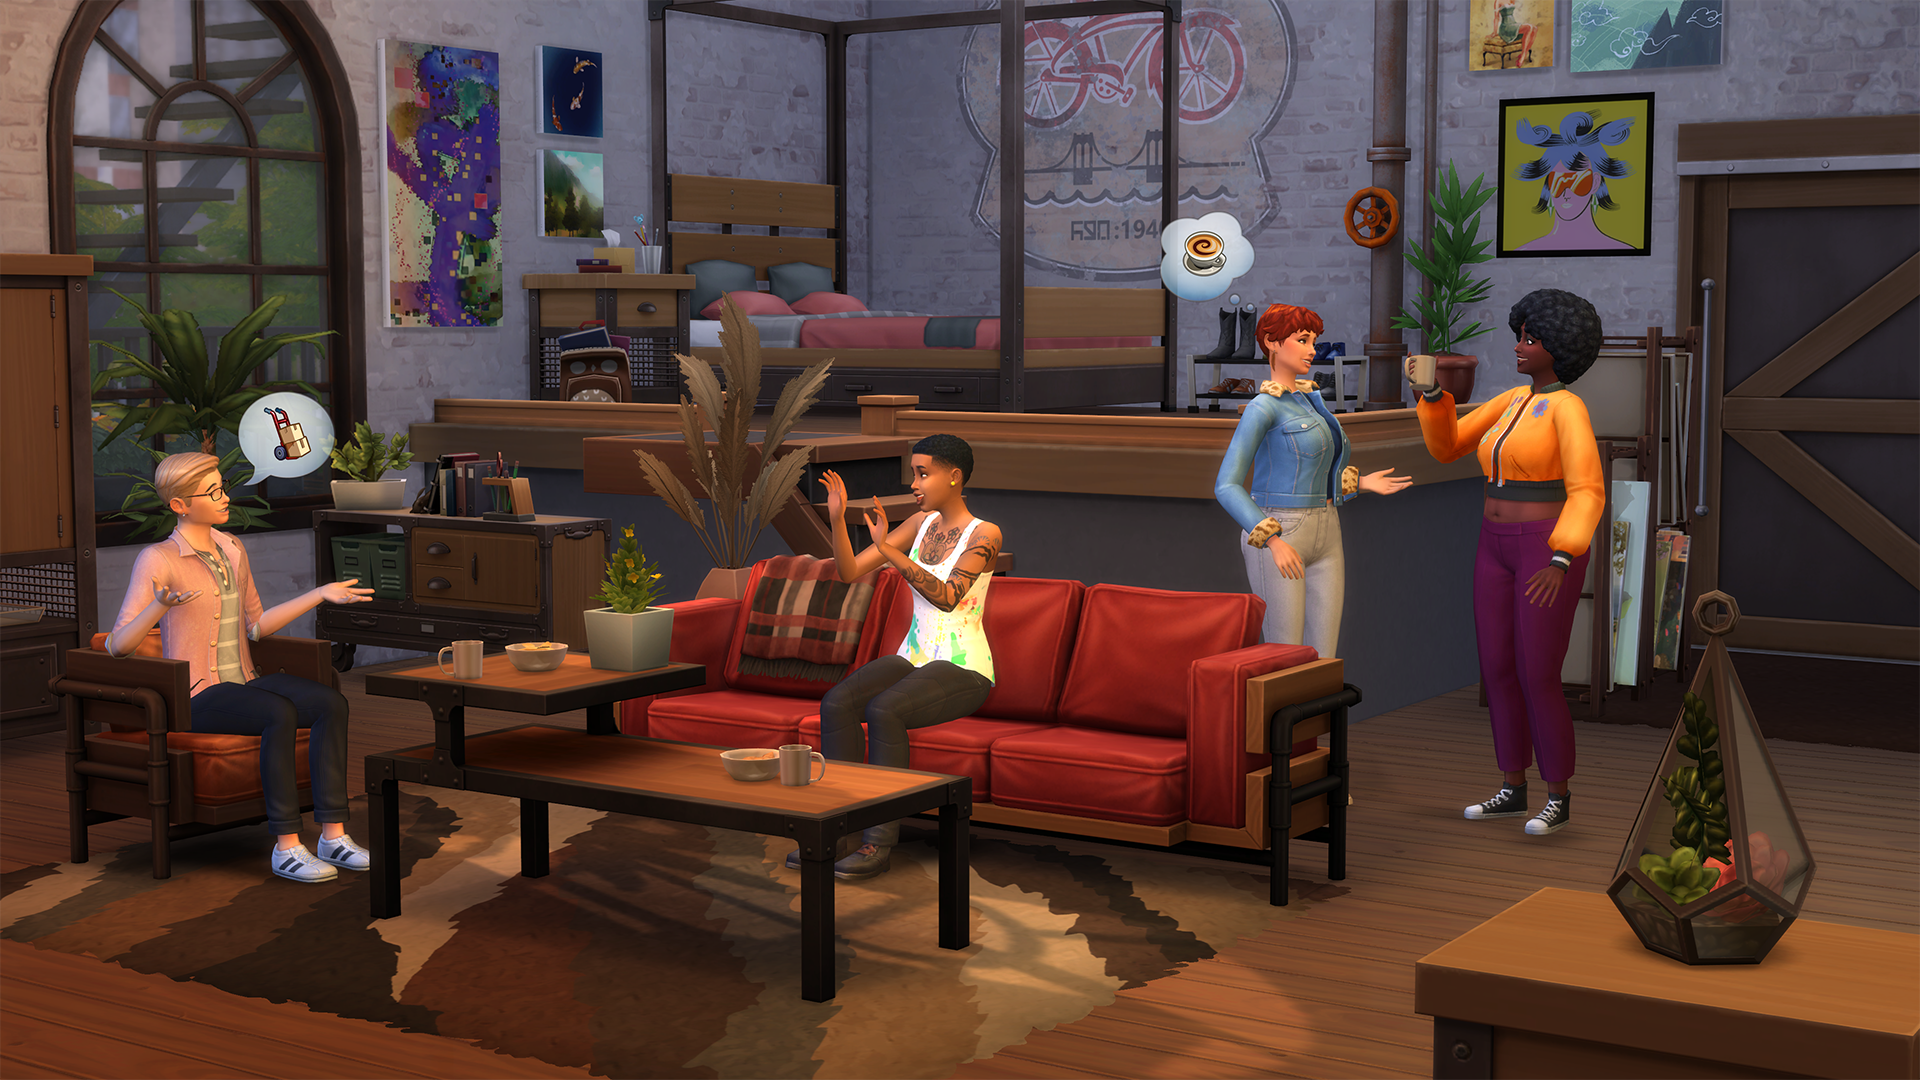 The Sims 4 Industrial Loft Kit Living Space with Guests Enjoying Life